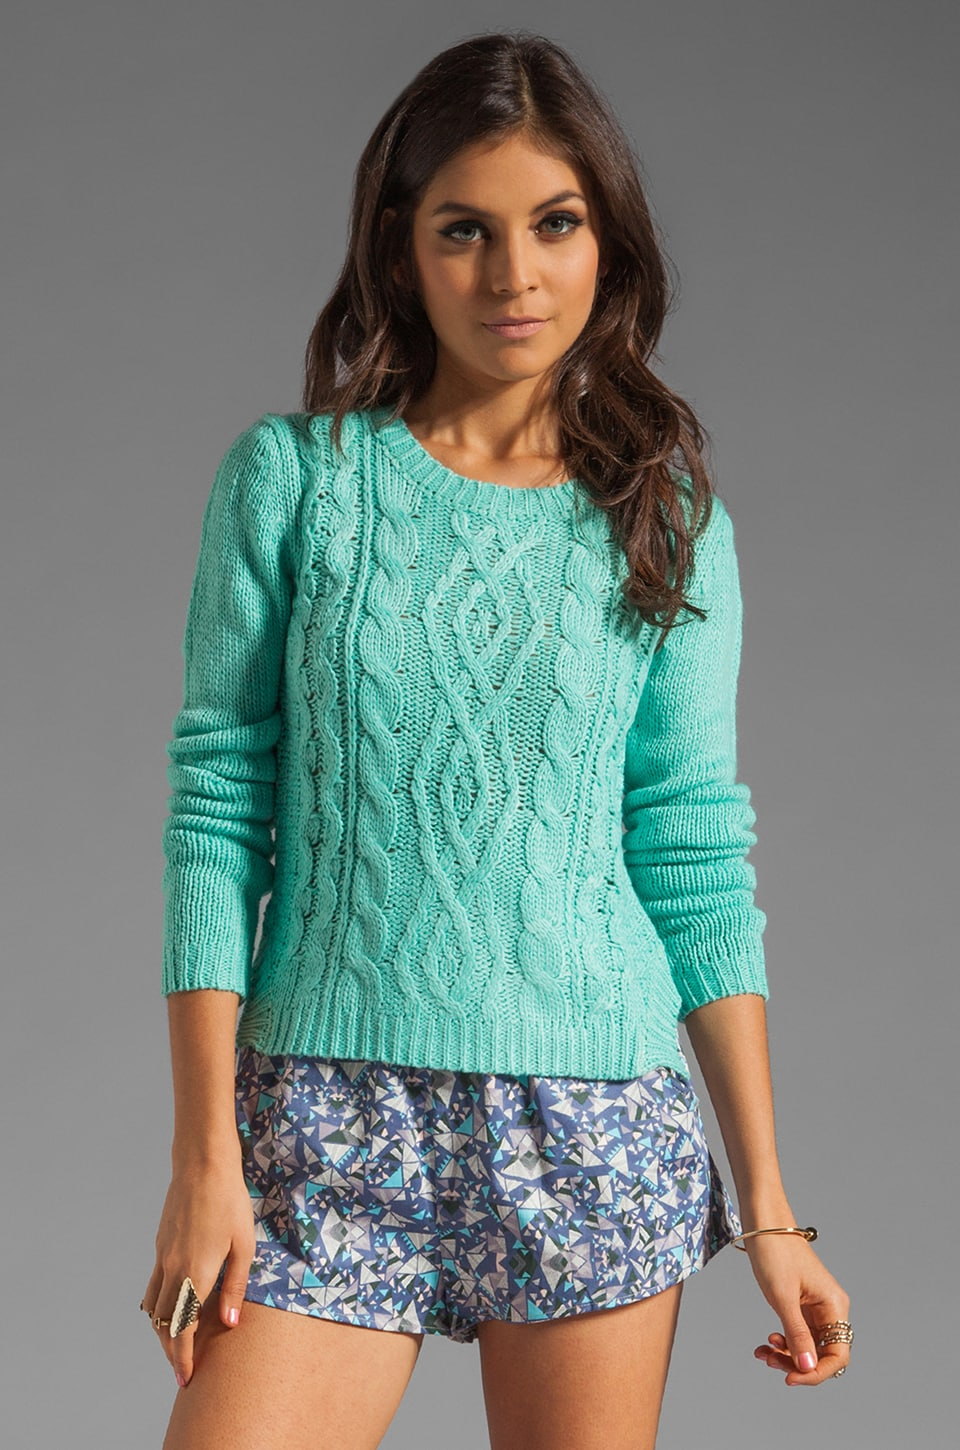 Finders Keepers Turn Around Knit in Spearmint